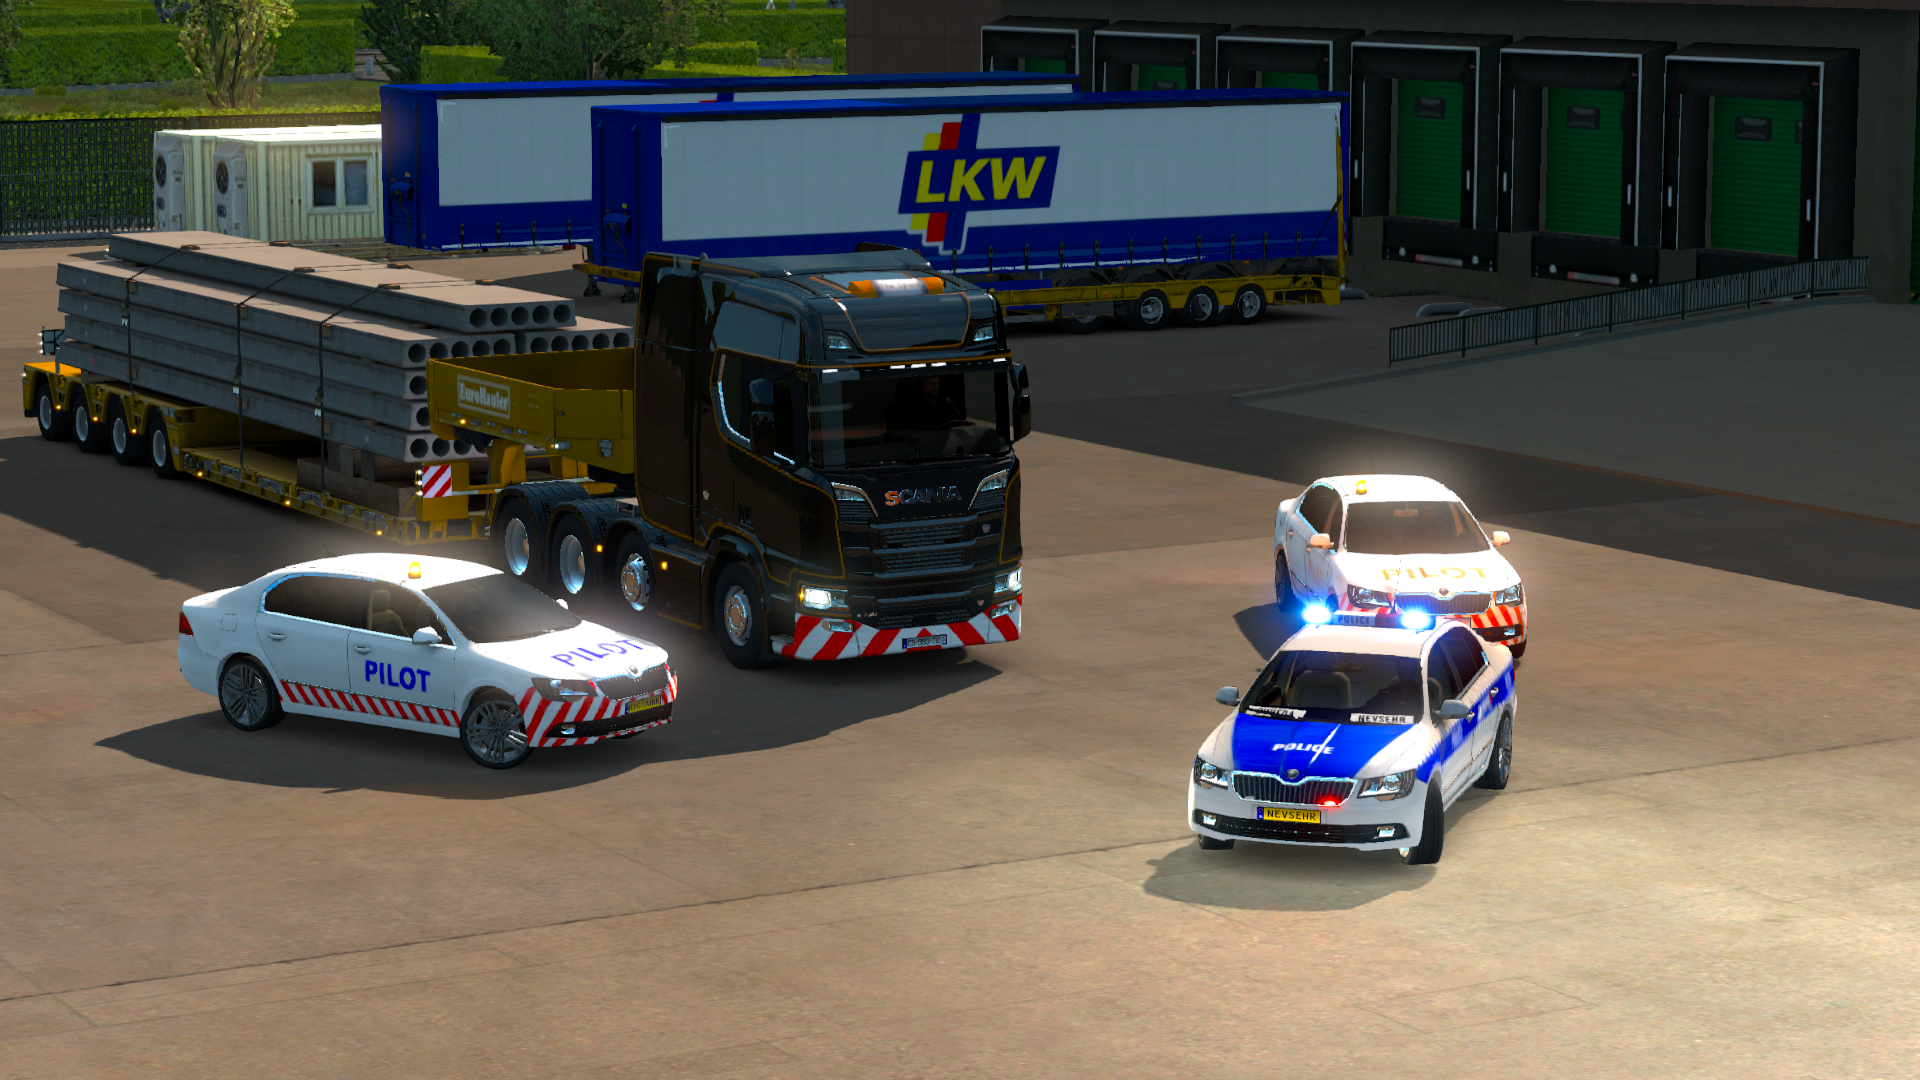 ets2_20190629_005746_00.png